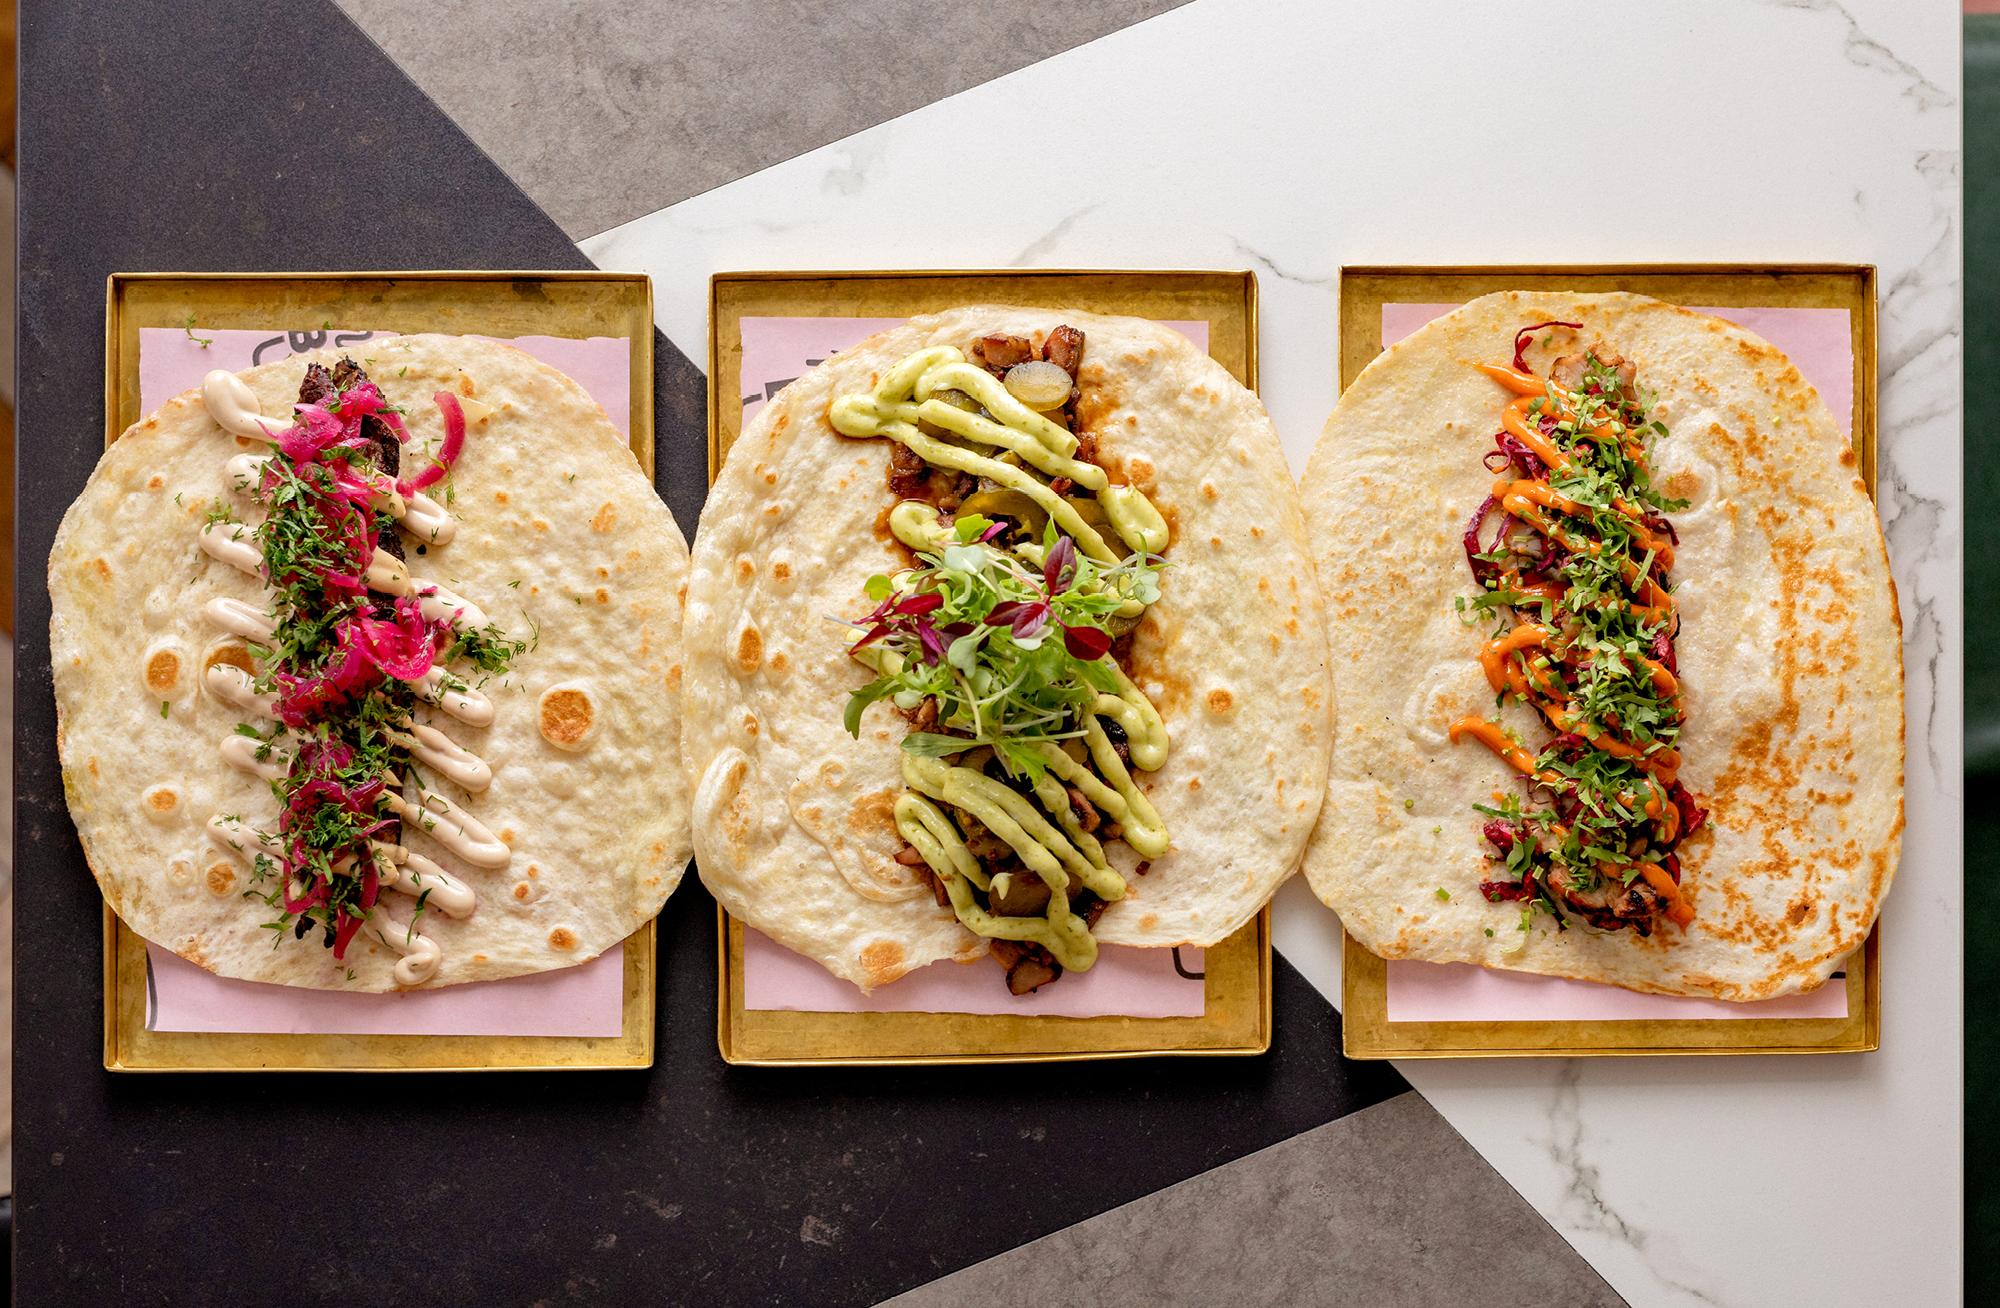 Maison Bab offers a selection of tastefully contemporary shawarma